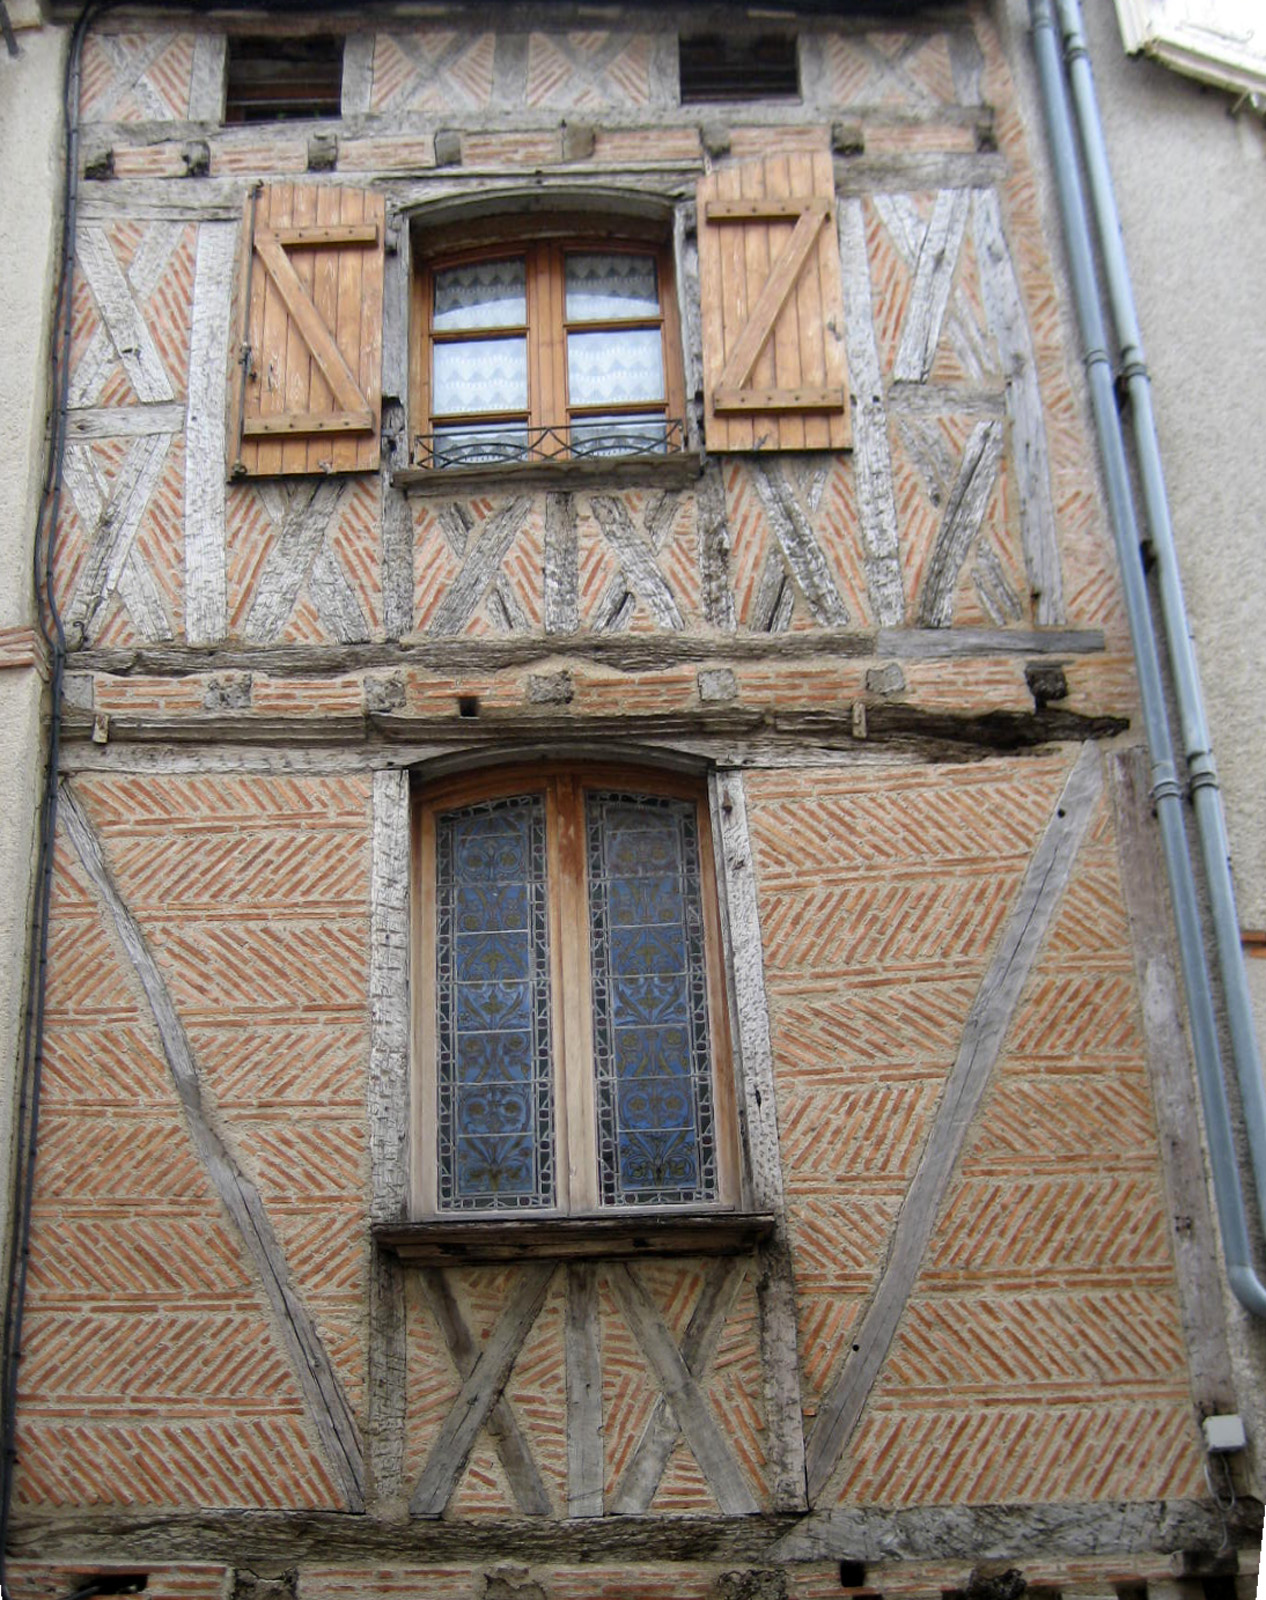 File:Half-timbered house, Agen, département de Lot-et-Garonne, France. Maison à colombages, Agen. - panoramio.jpg